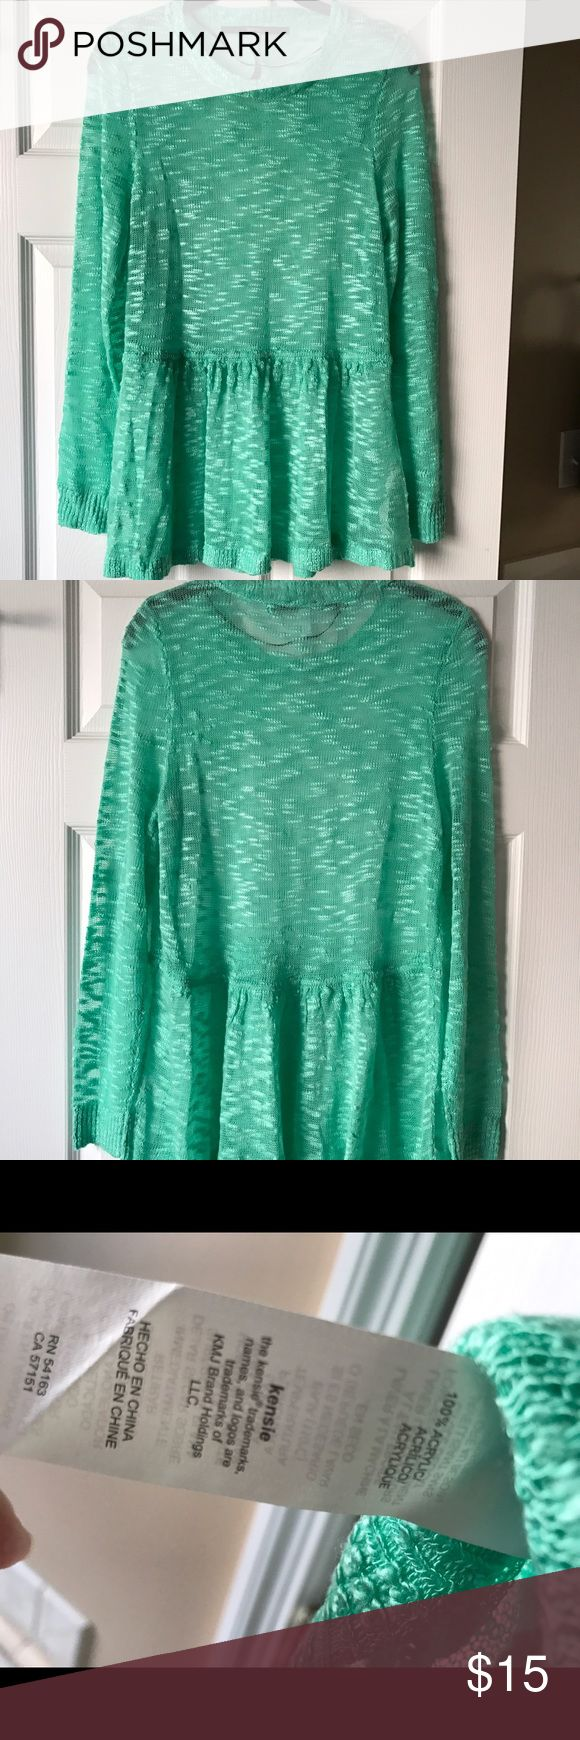 NWOT Kensie mint green top Super soft top, color is mint green. Somewhat sheer (you would want to wear a tank underneath). Kensie Tops